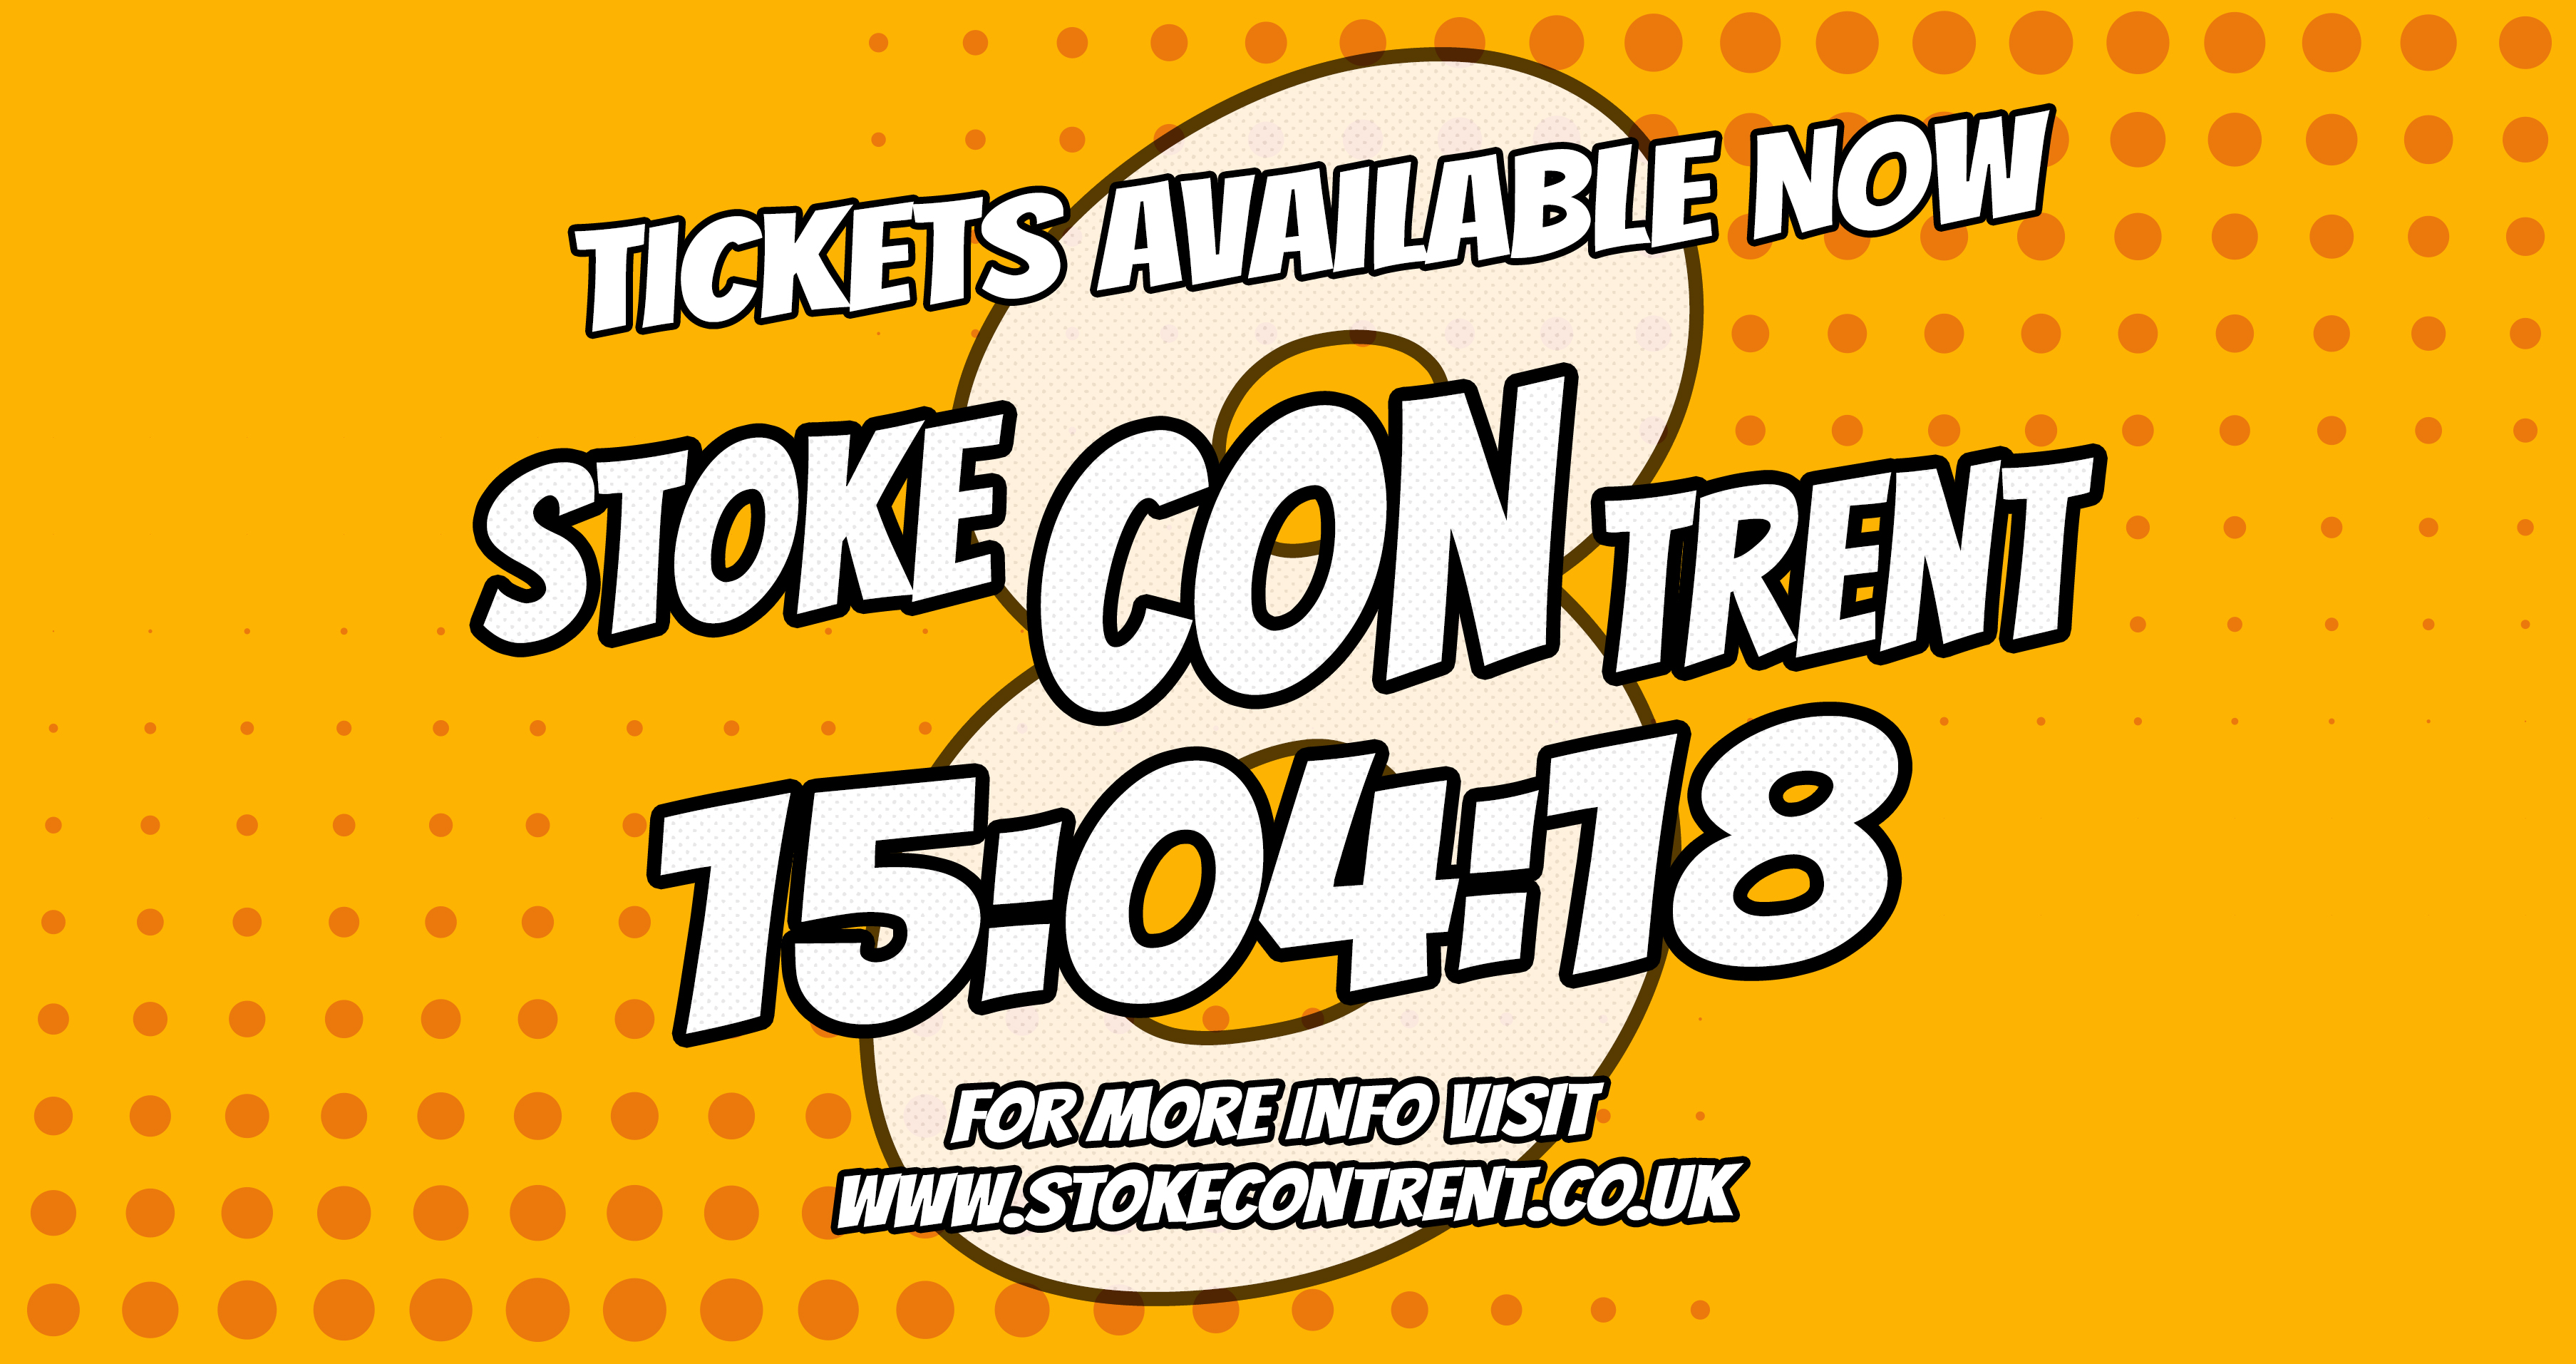 Buy Tickets for SCT #8 15-04-18 Tickets Available Now